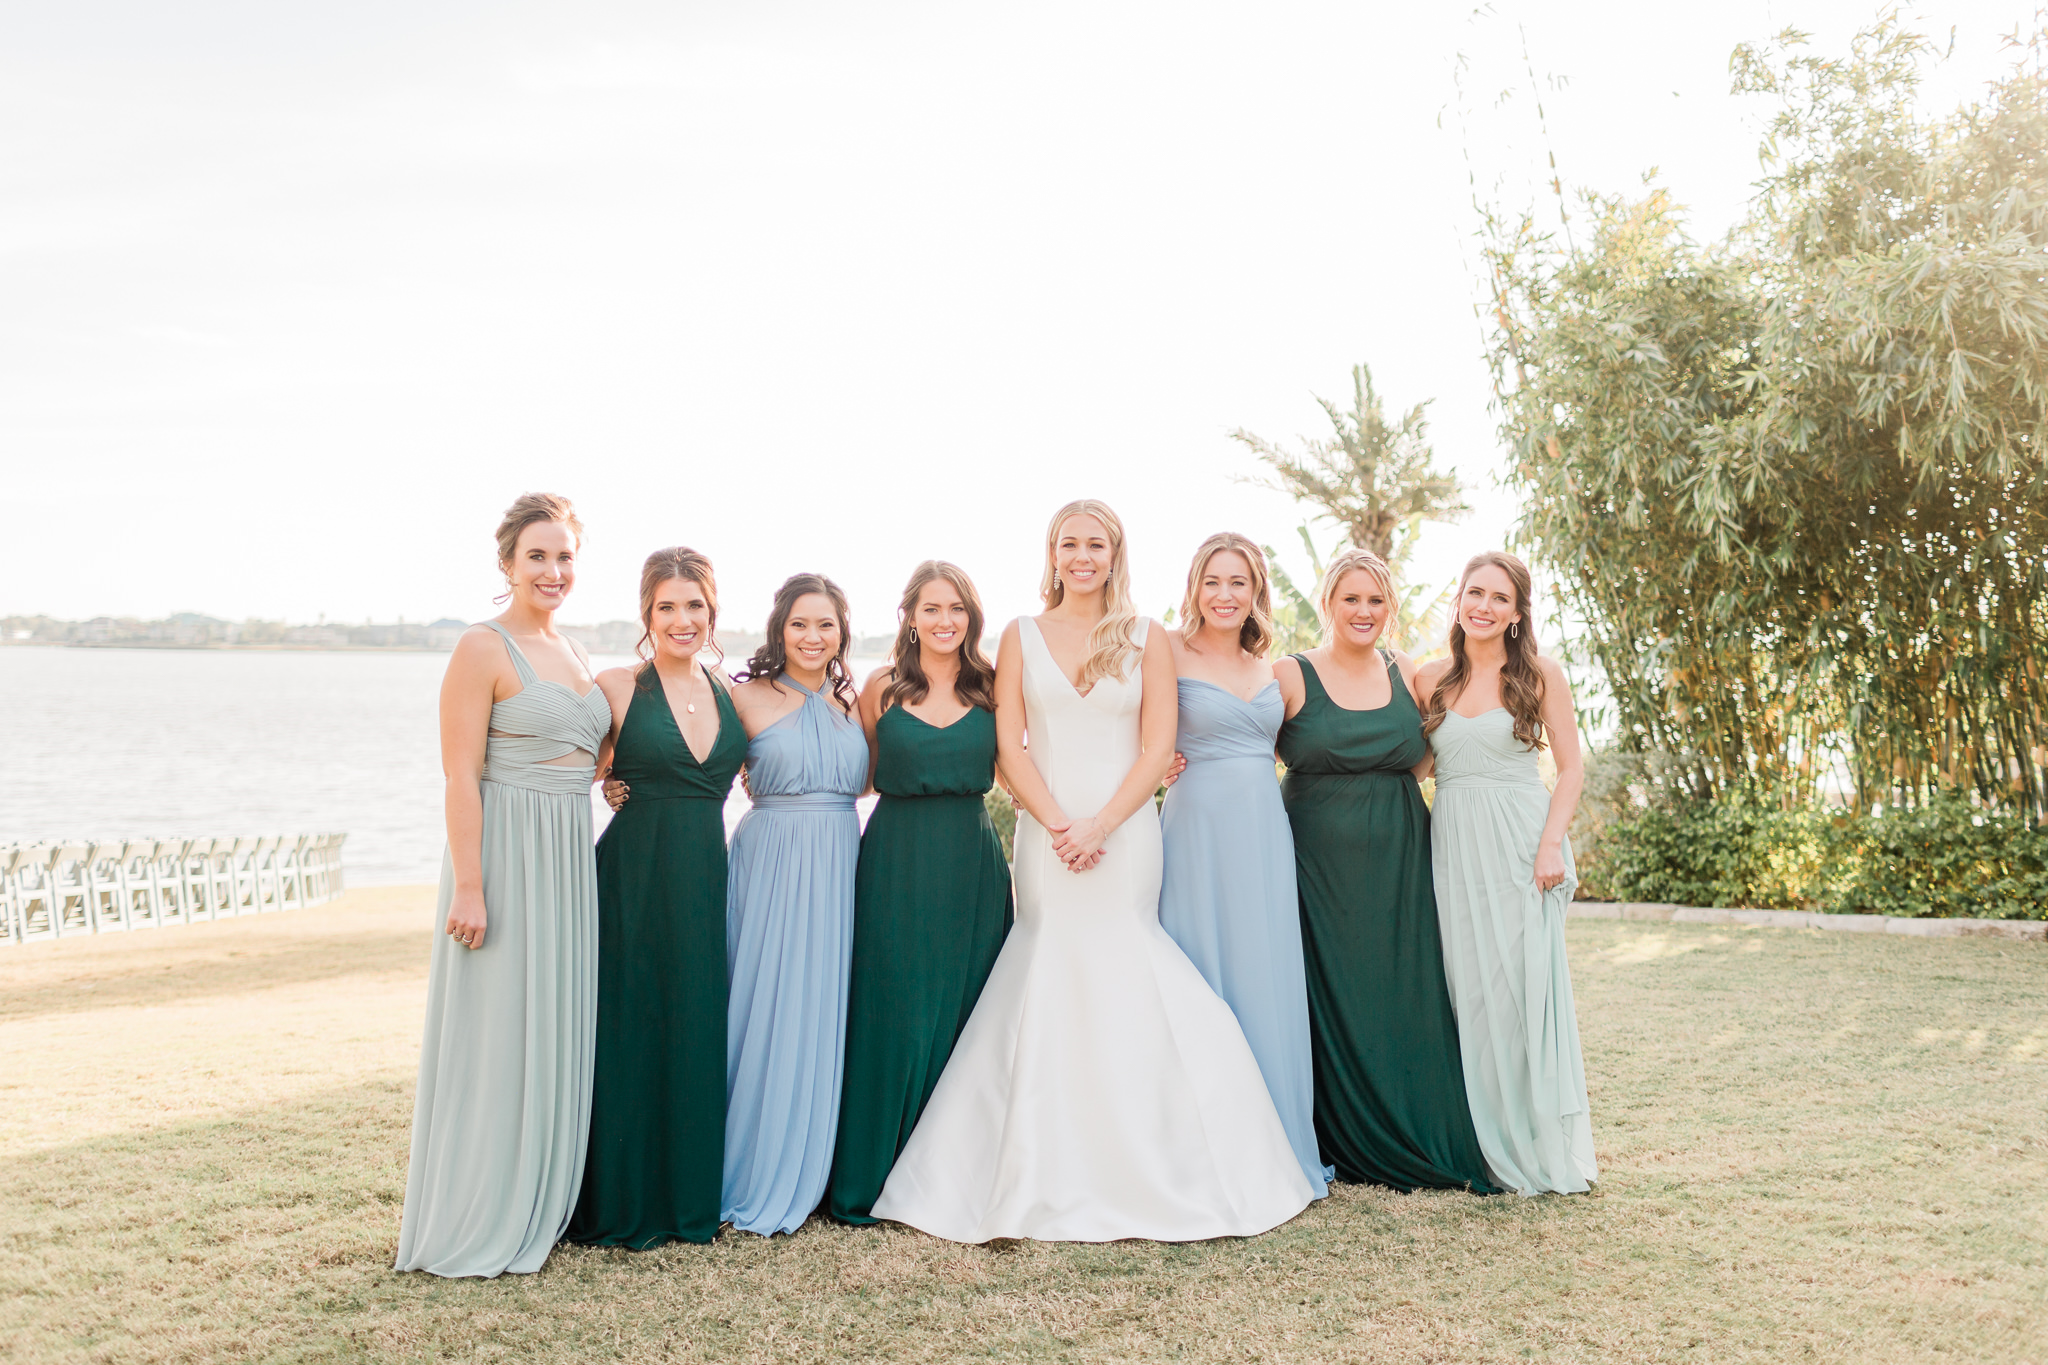 Green and Blue Bridesmaids Dresses